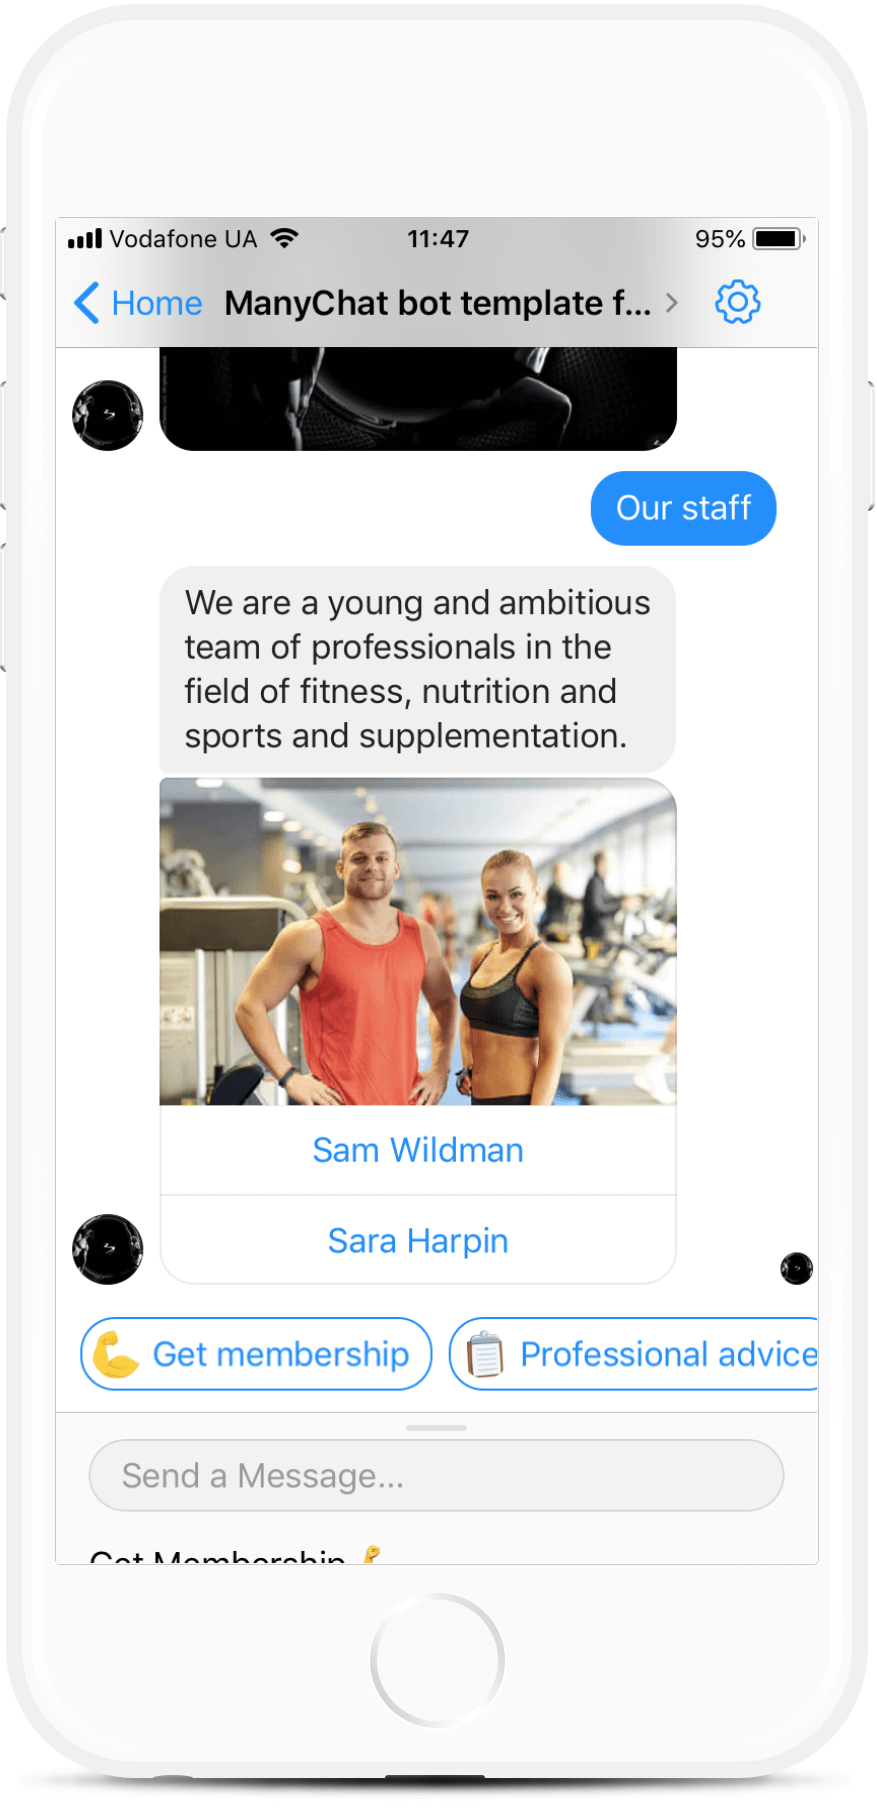 ManyChat bot template for Gyms and Fitness Clubs for $99   #messenger #bottemplates #bots #chatbots #aibots #fbmessenger #botmakers